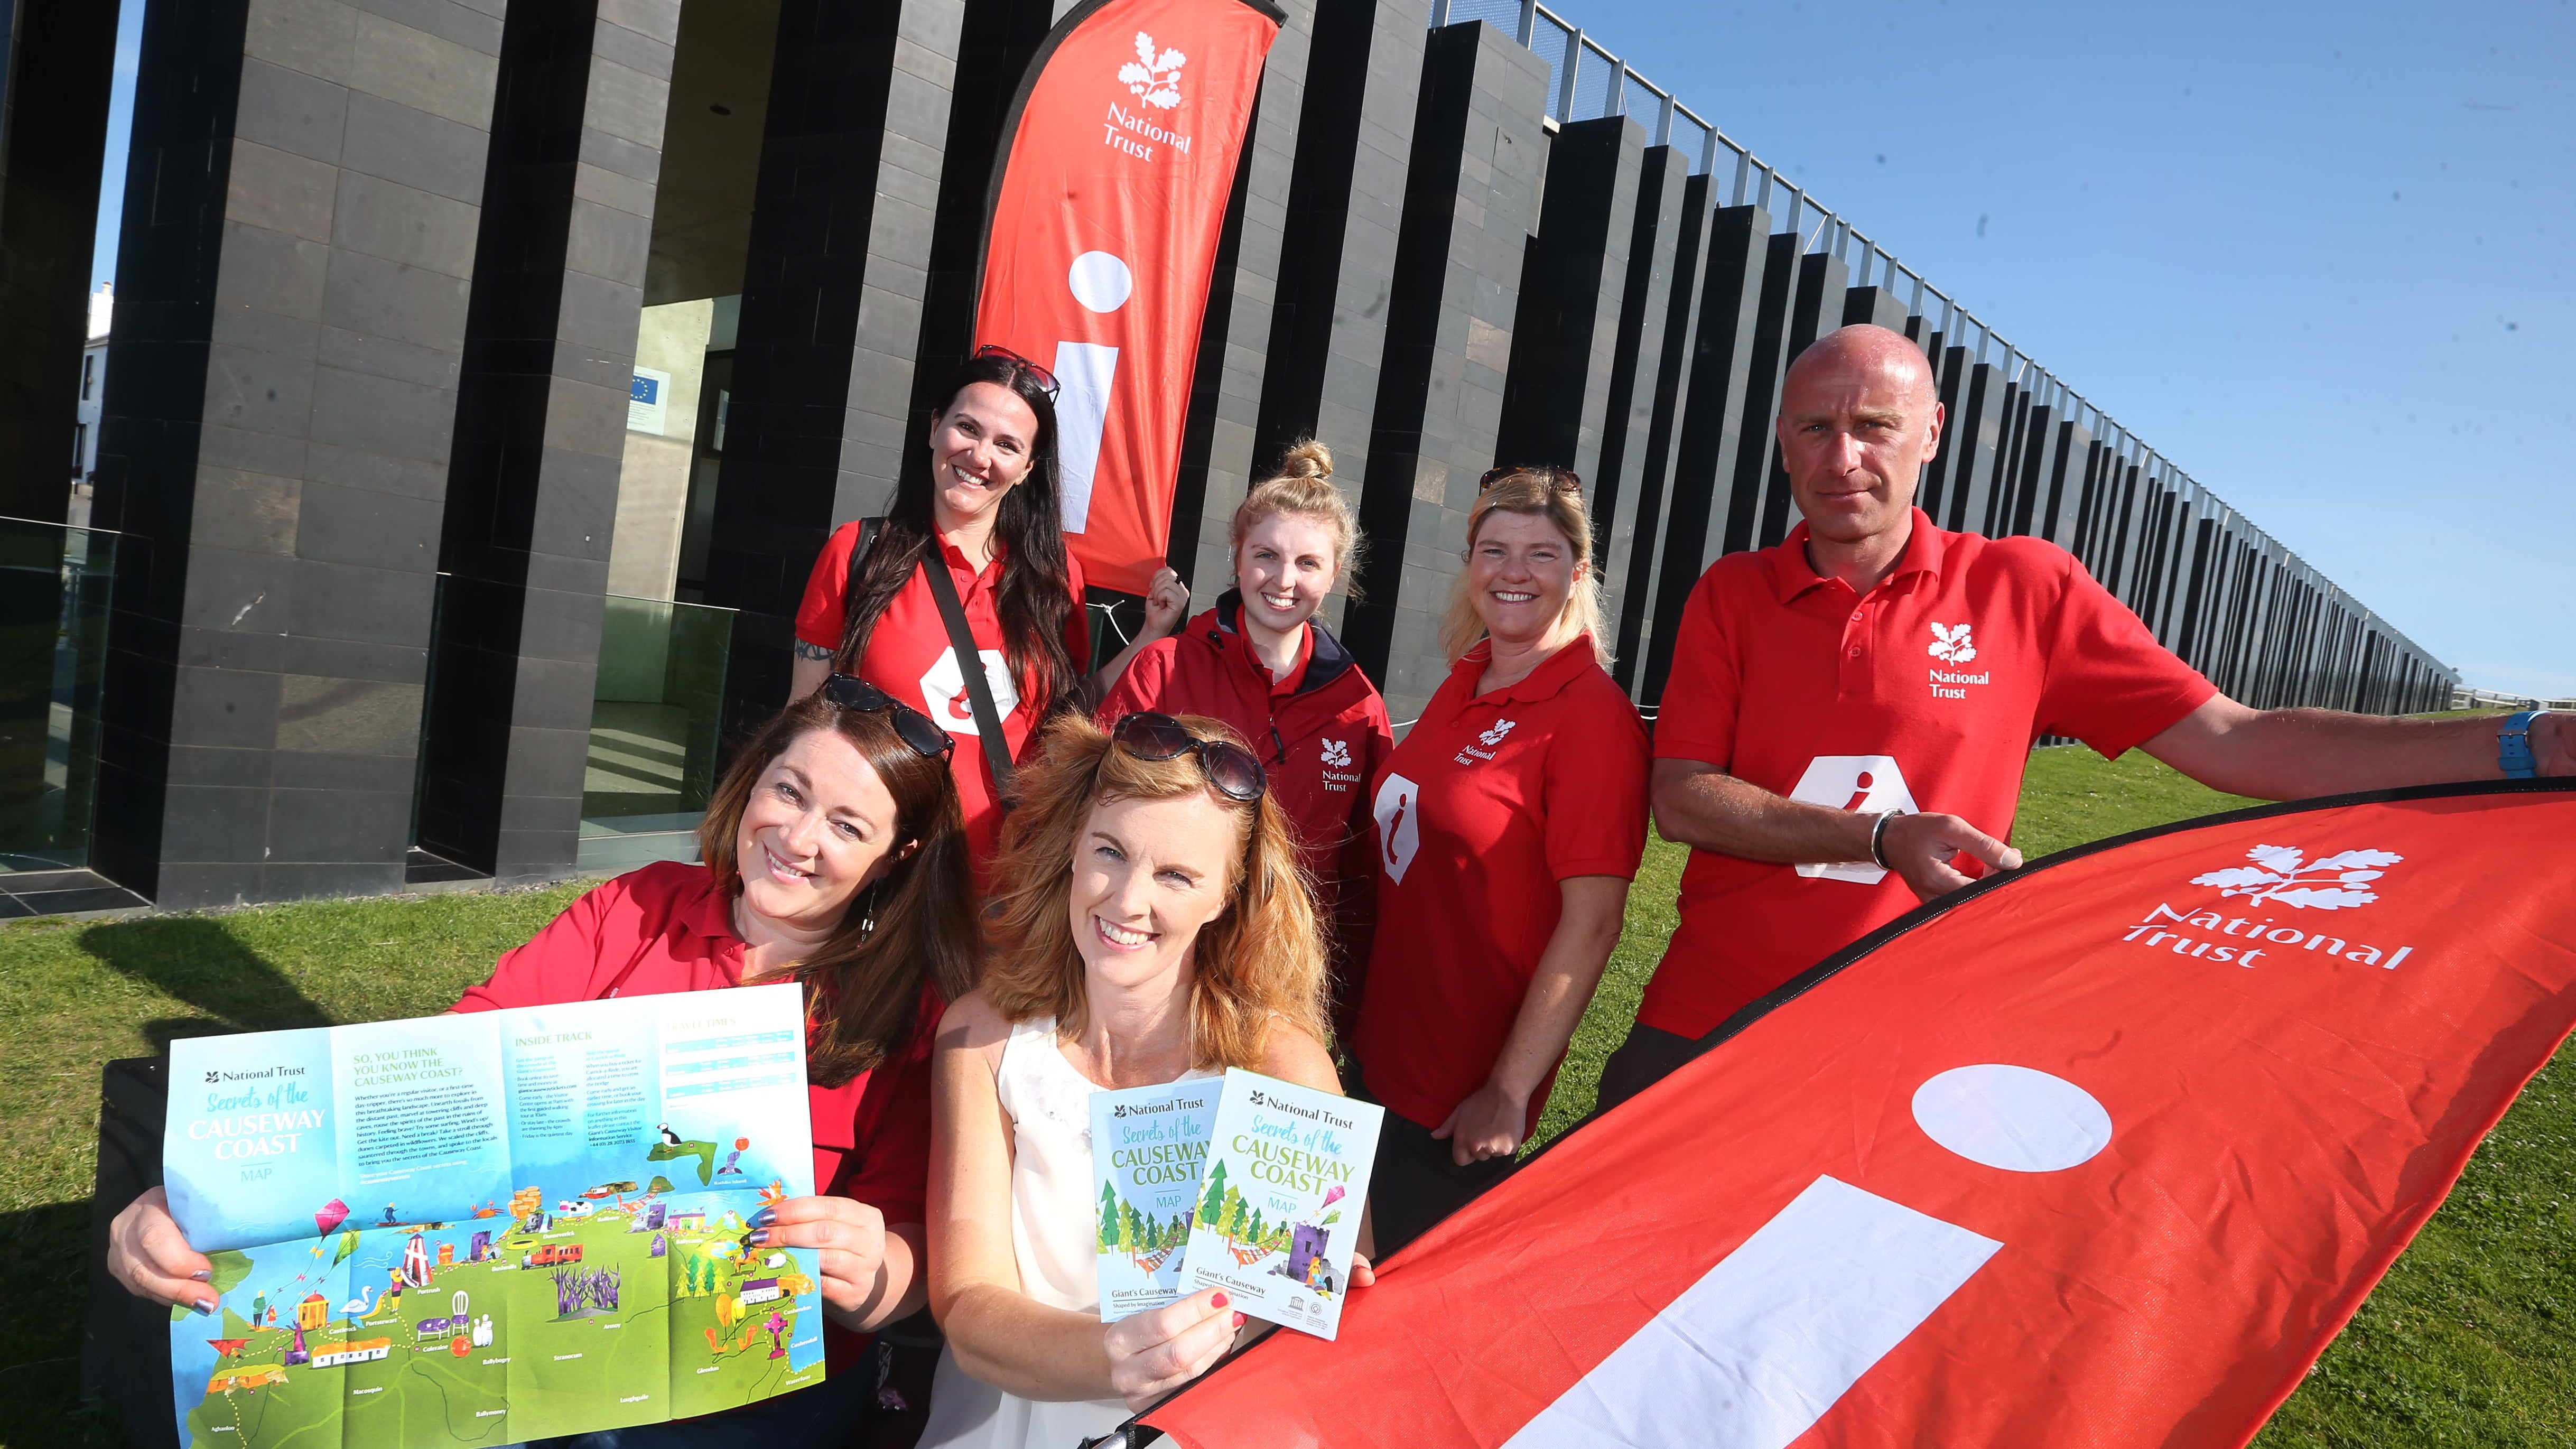 Staff from the National Trust and Causeway Coast and Glens Borough Council pictured with the new map